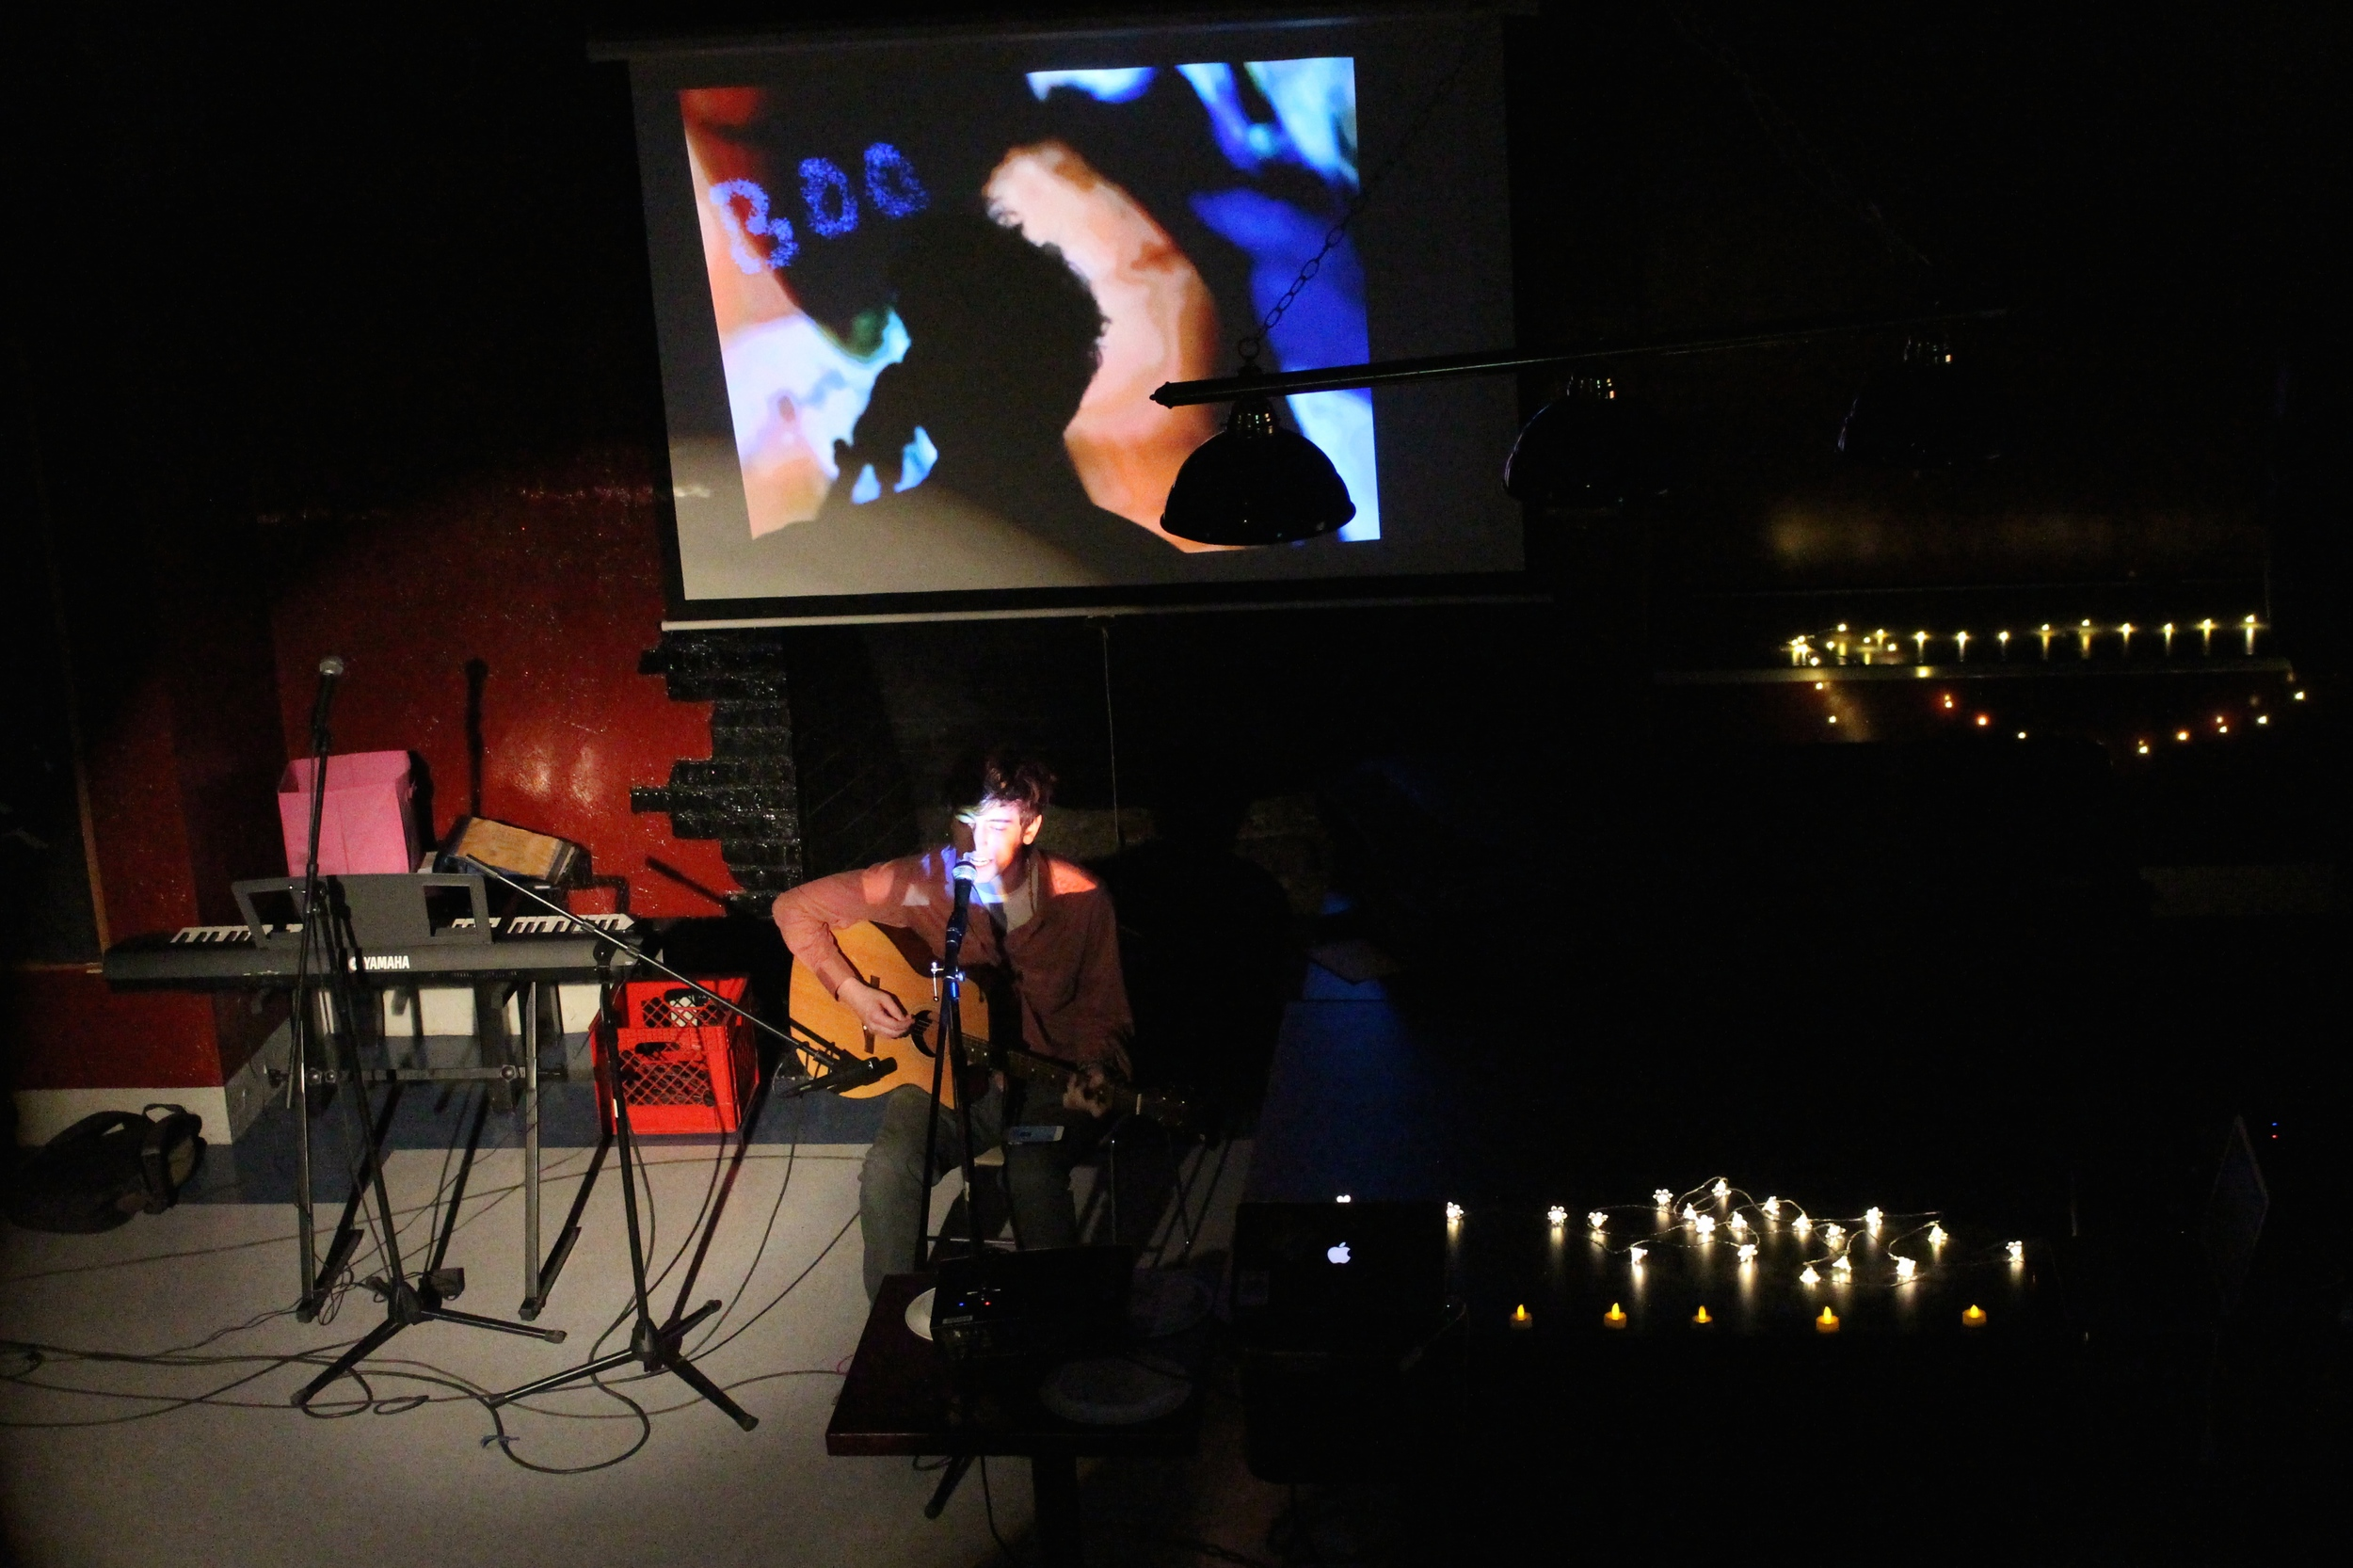 Nate Phillips '17 played an original song as a video installation ran in the background